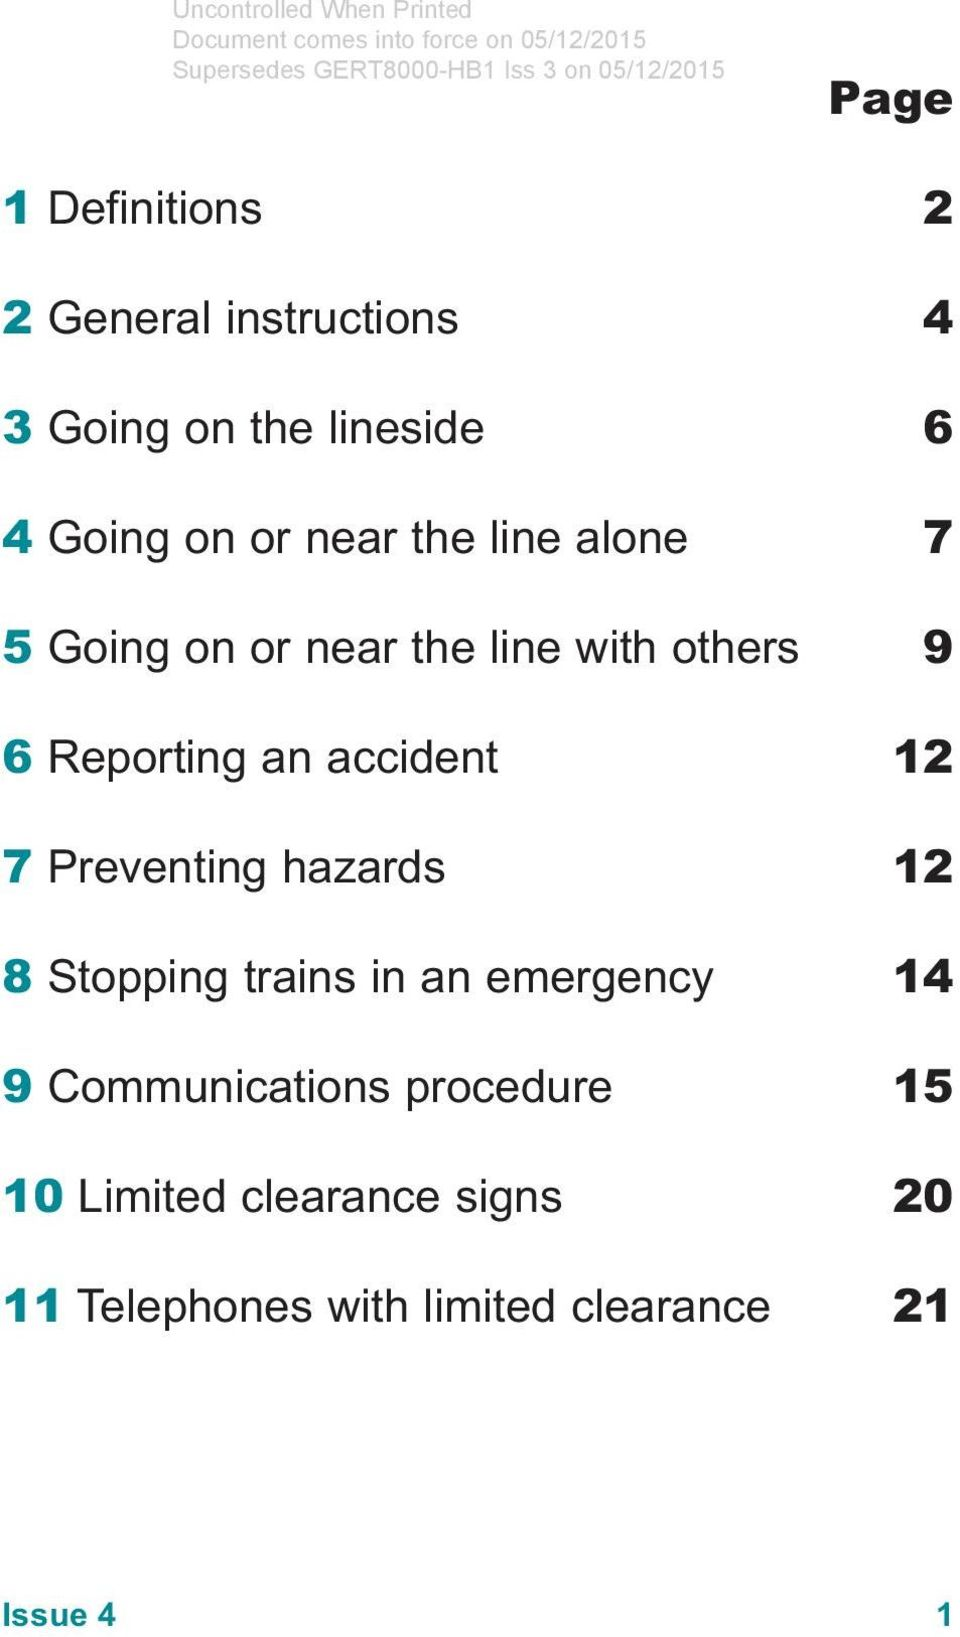 accident 12 7 Preventing hazards 12 8 Stopping trains in an emergency 14 9